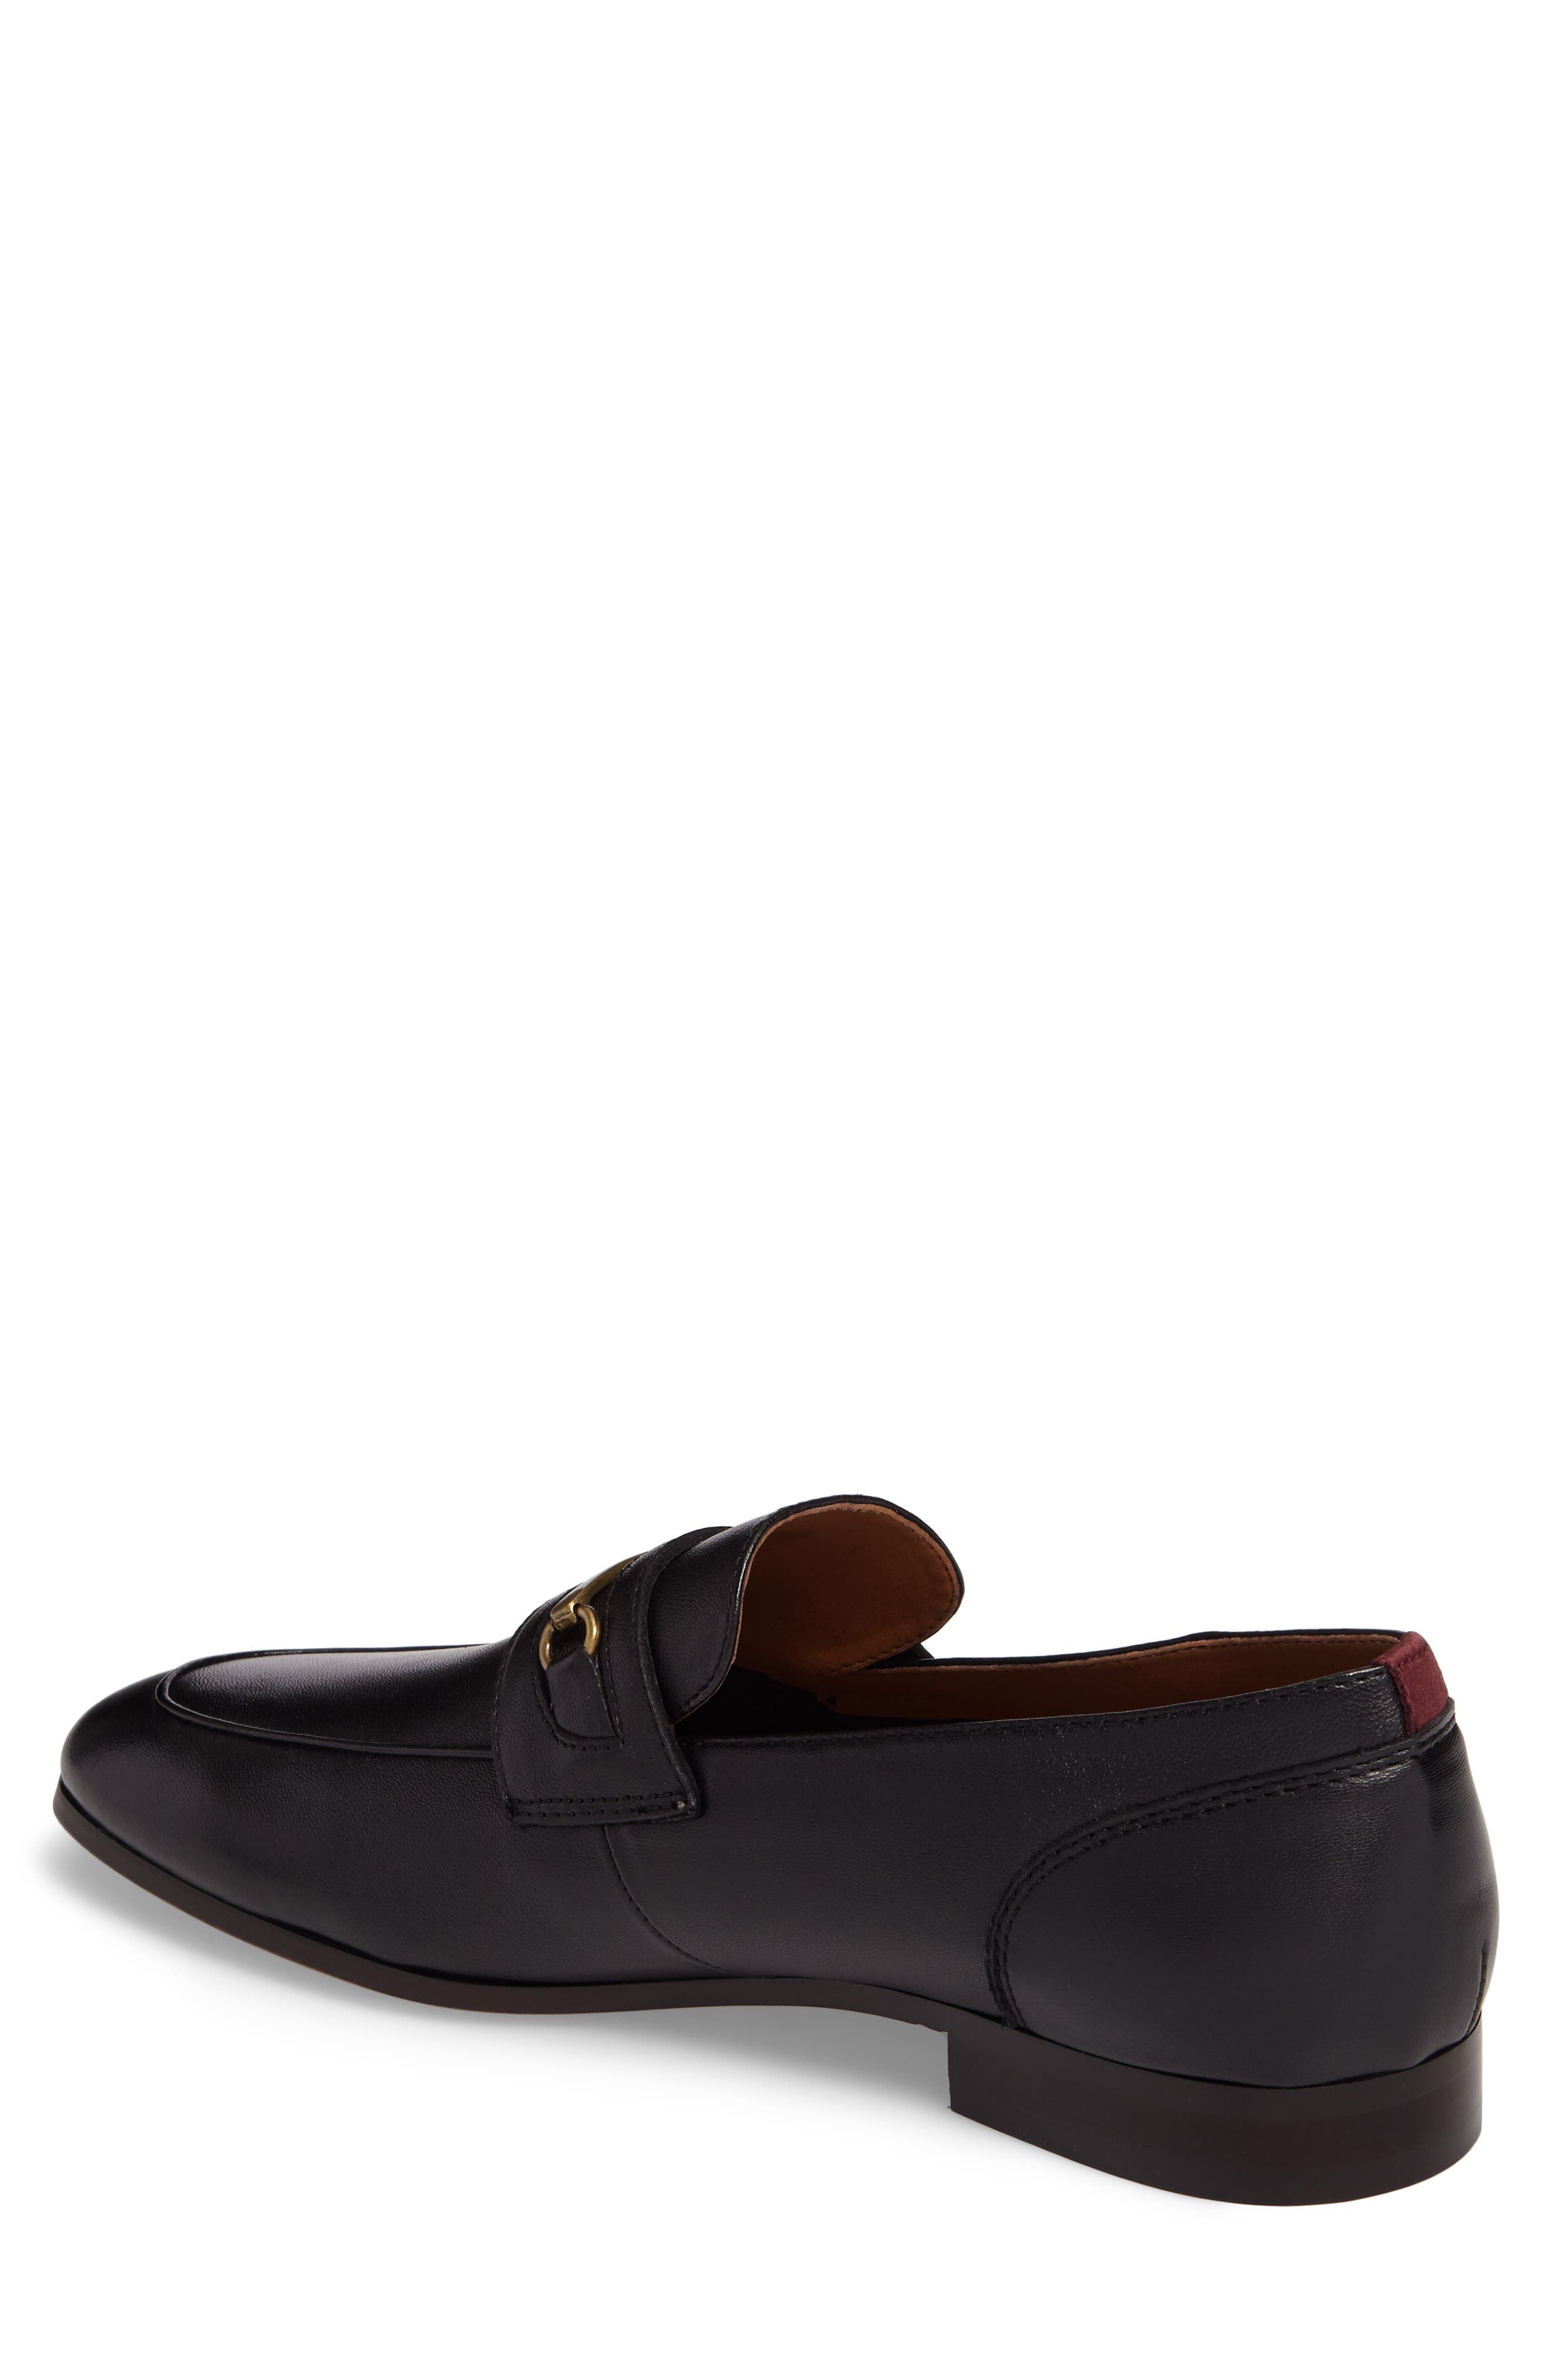 Alternate Image 2  - ALDO Murat Bit Loafer (Men)